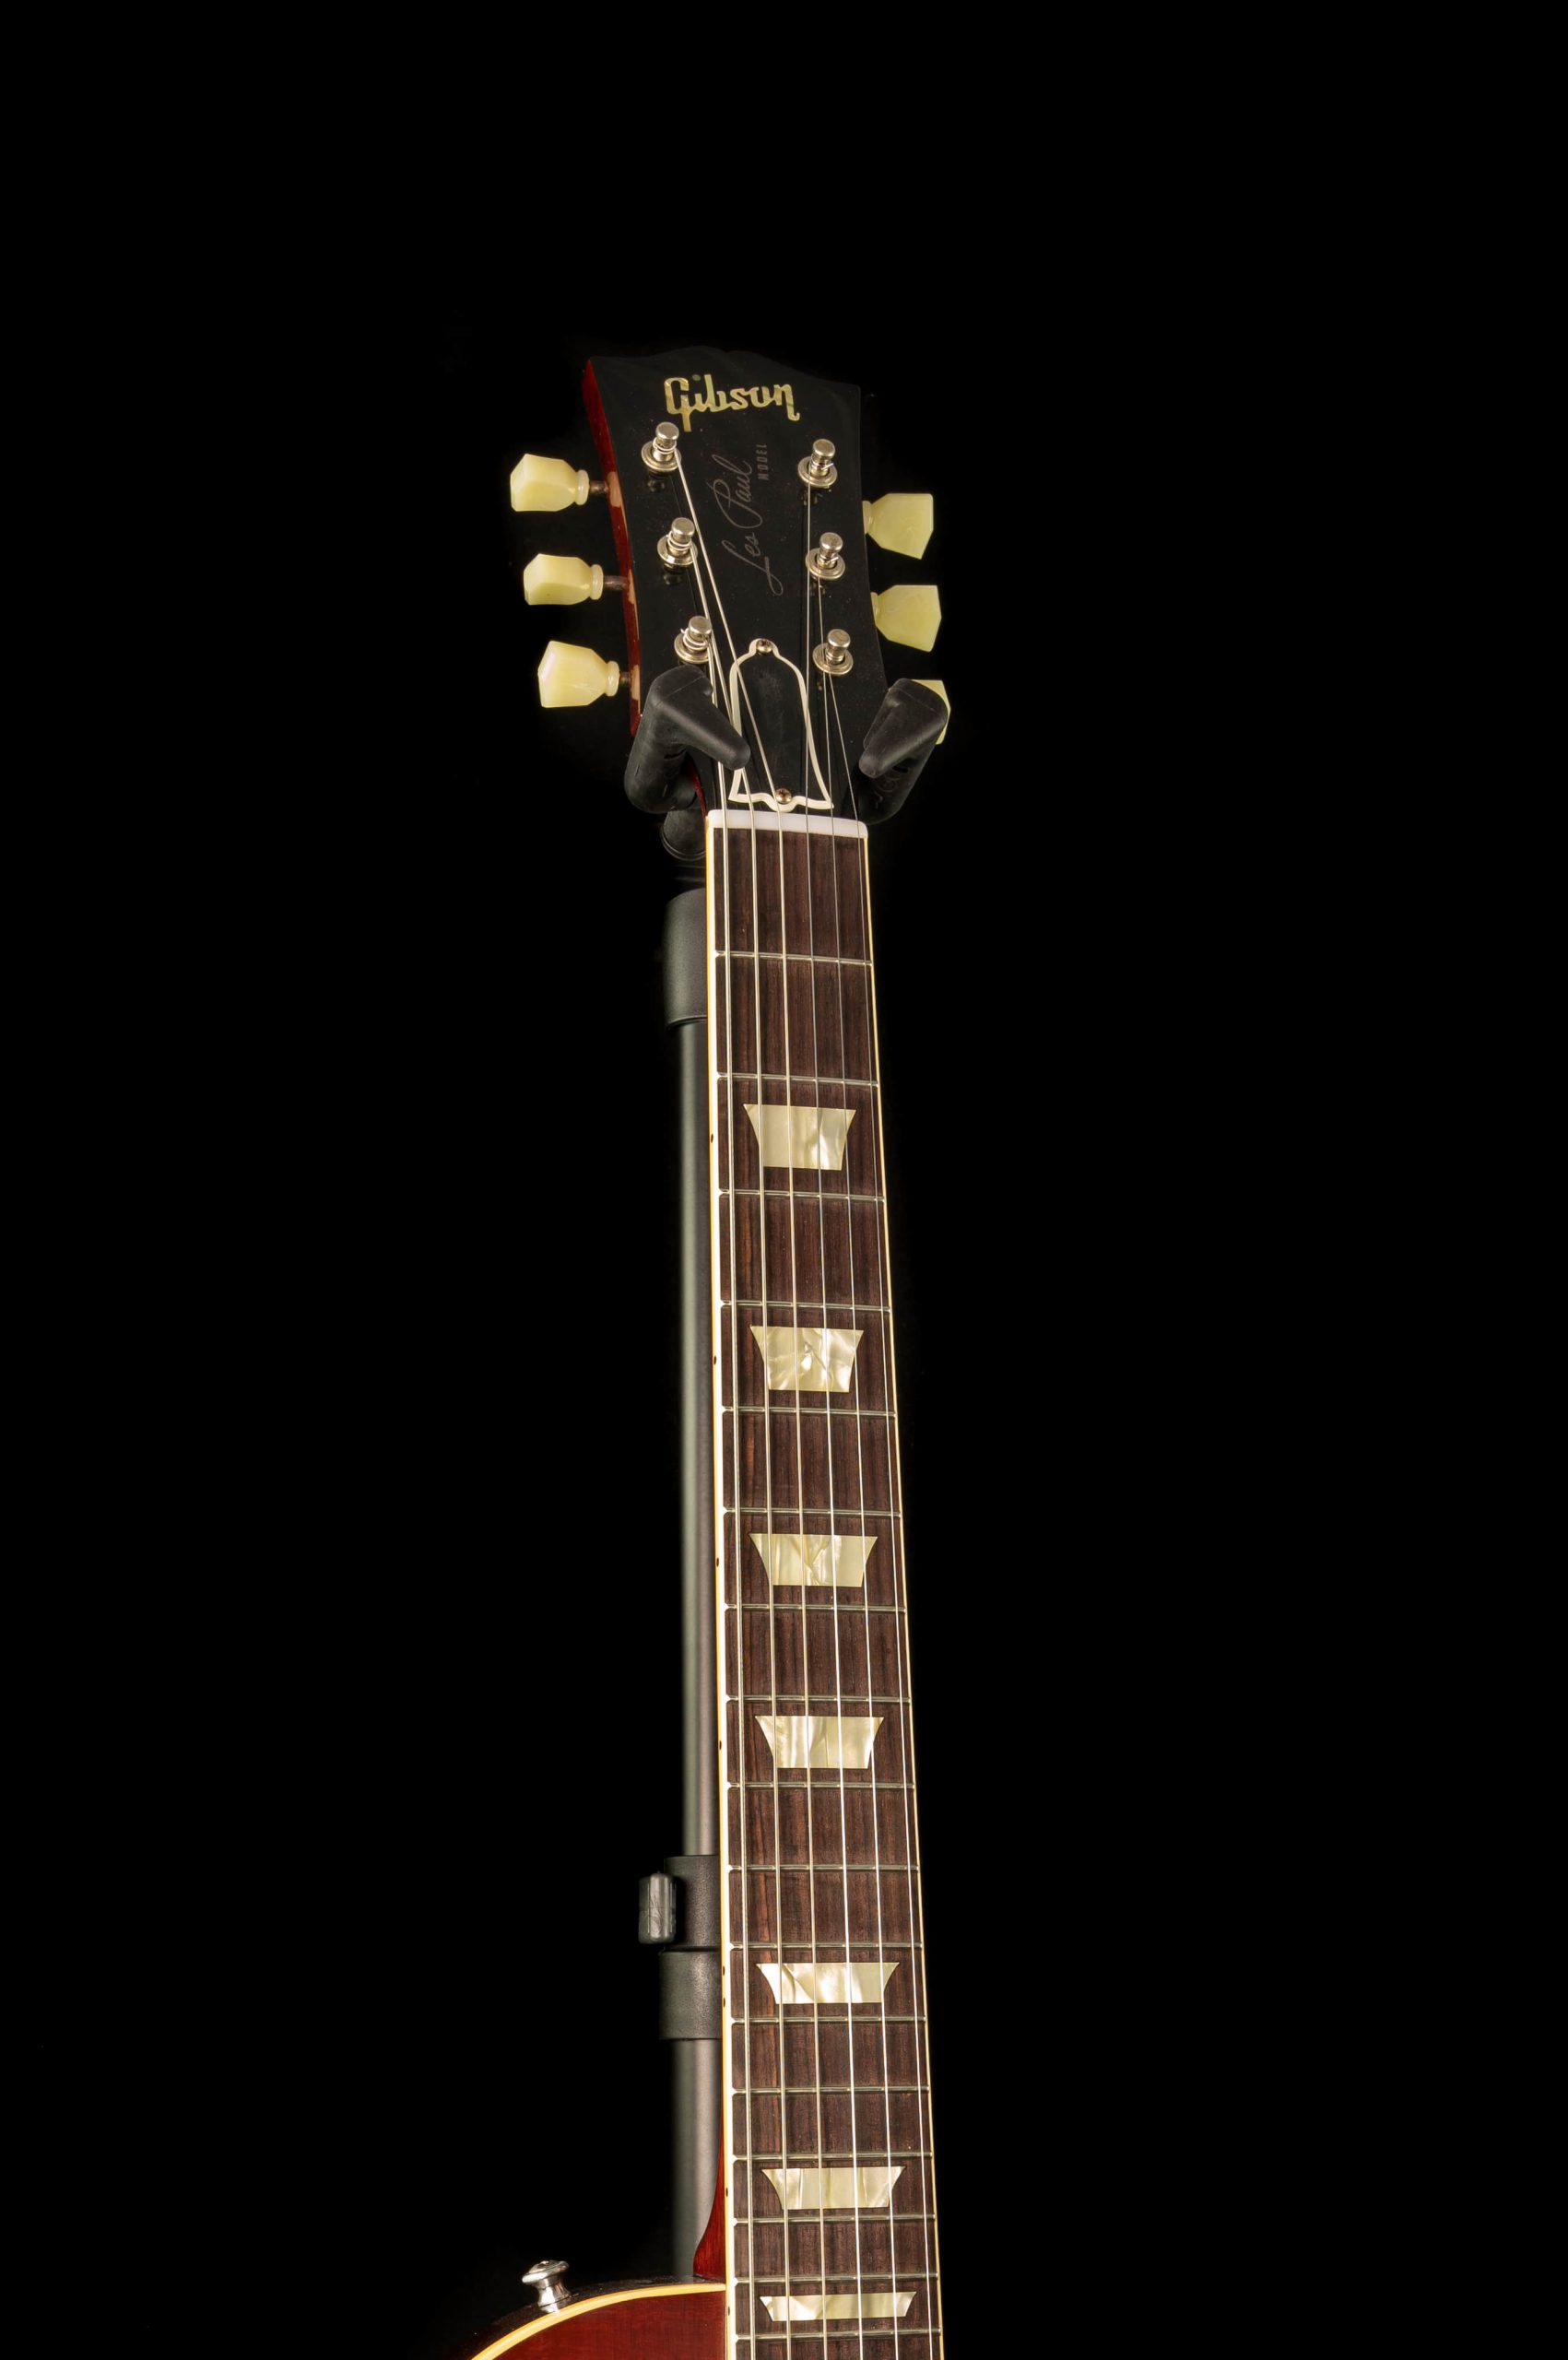 Gibson Murphy Lab 1958 Les Paul Standard in Washed Cherry Sunburst Ultra Light Aged